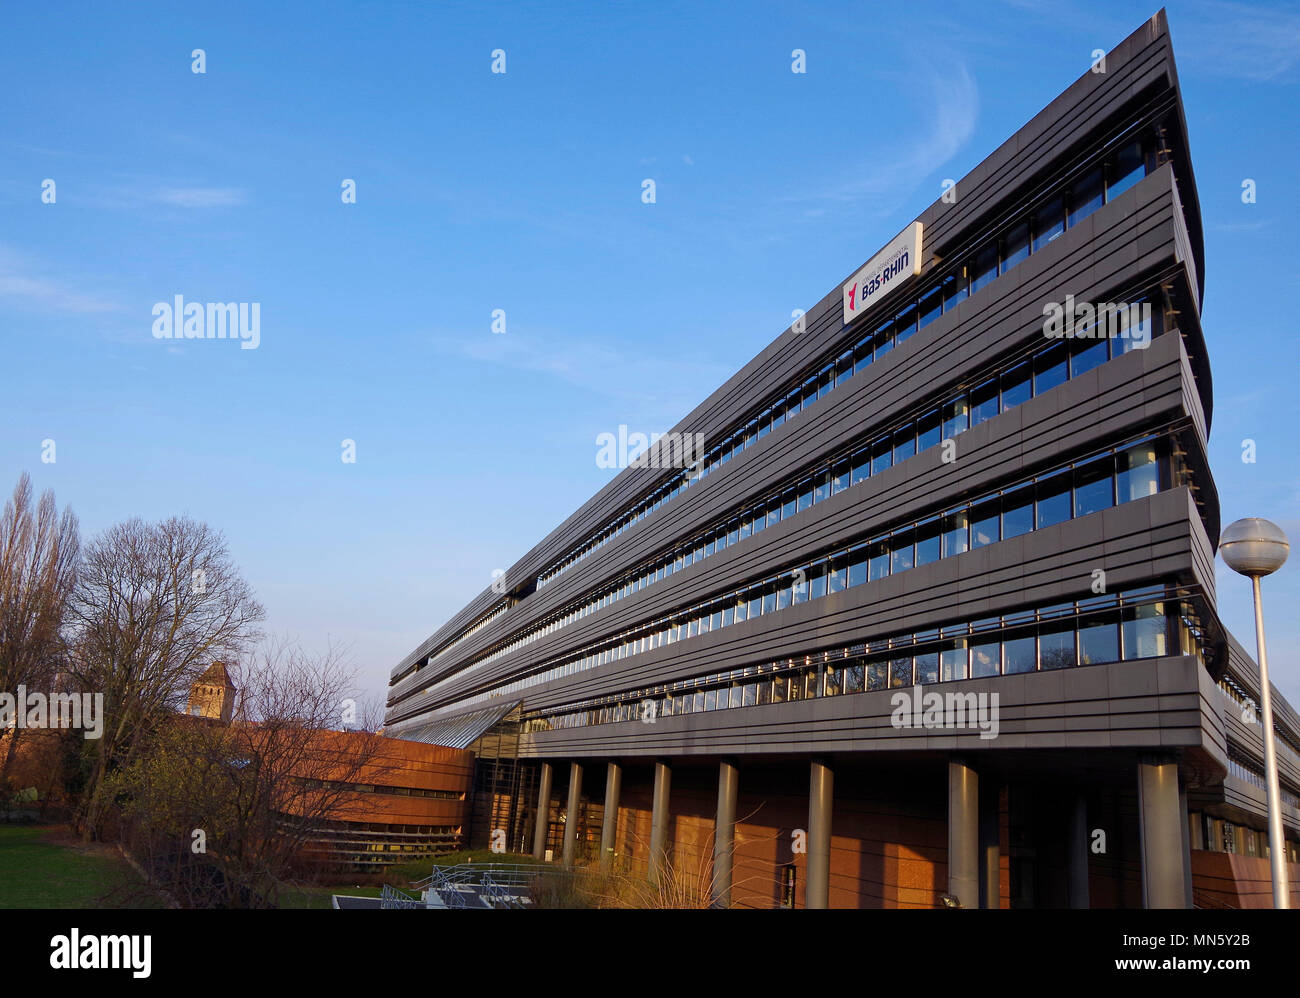 Hotel du Département, Administrative centre of Bas-Rhin, Lower Rhine Department,  in sleek black office building - Stock Image